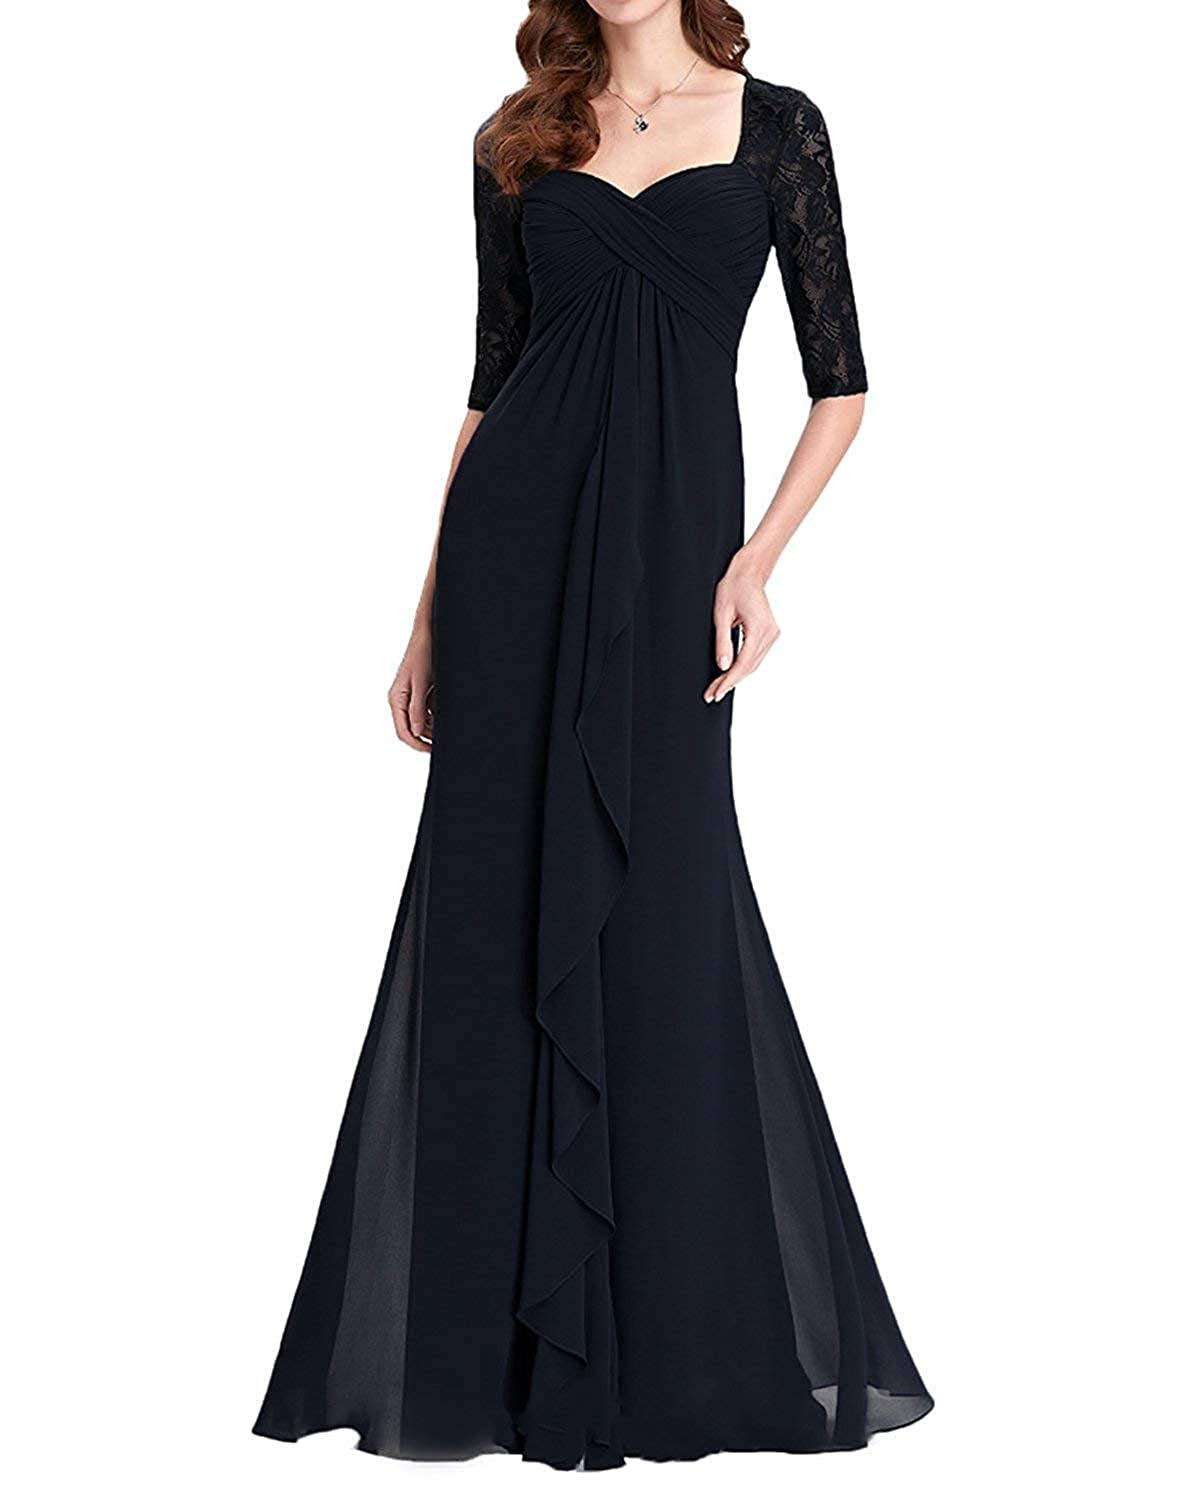 Black Womens Lace Mother of The Bride Dress Plus Size Long Formal Party Gown